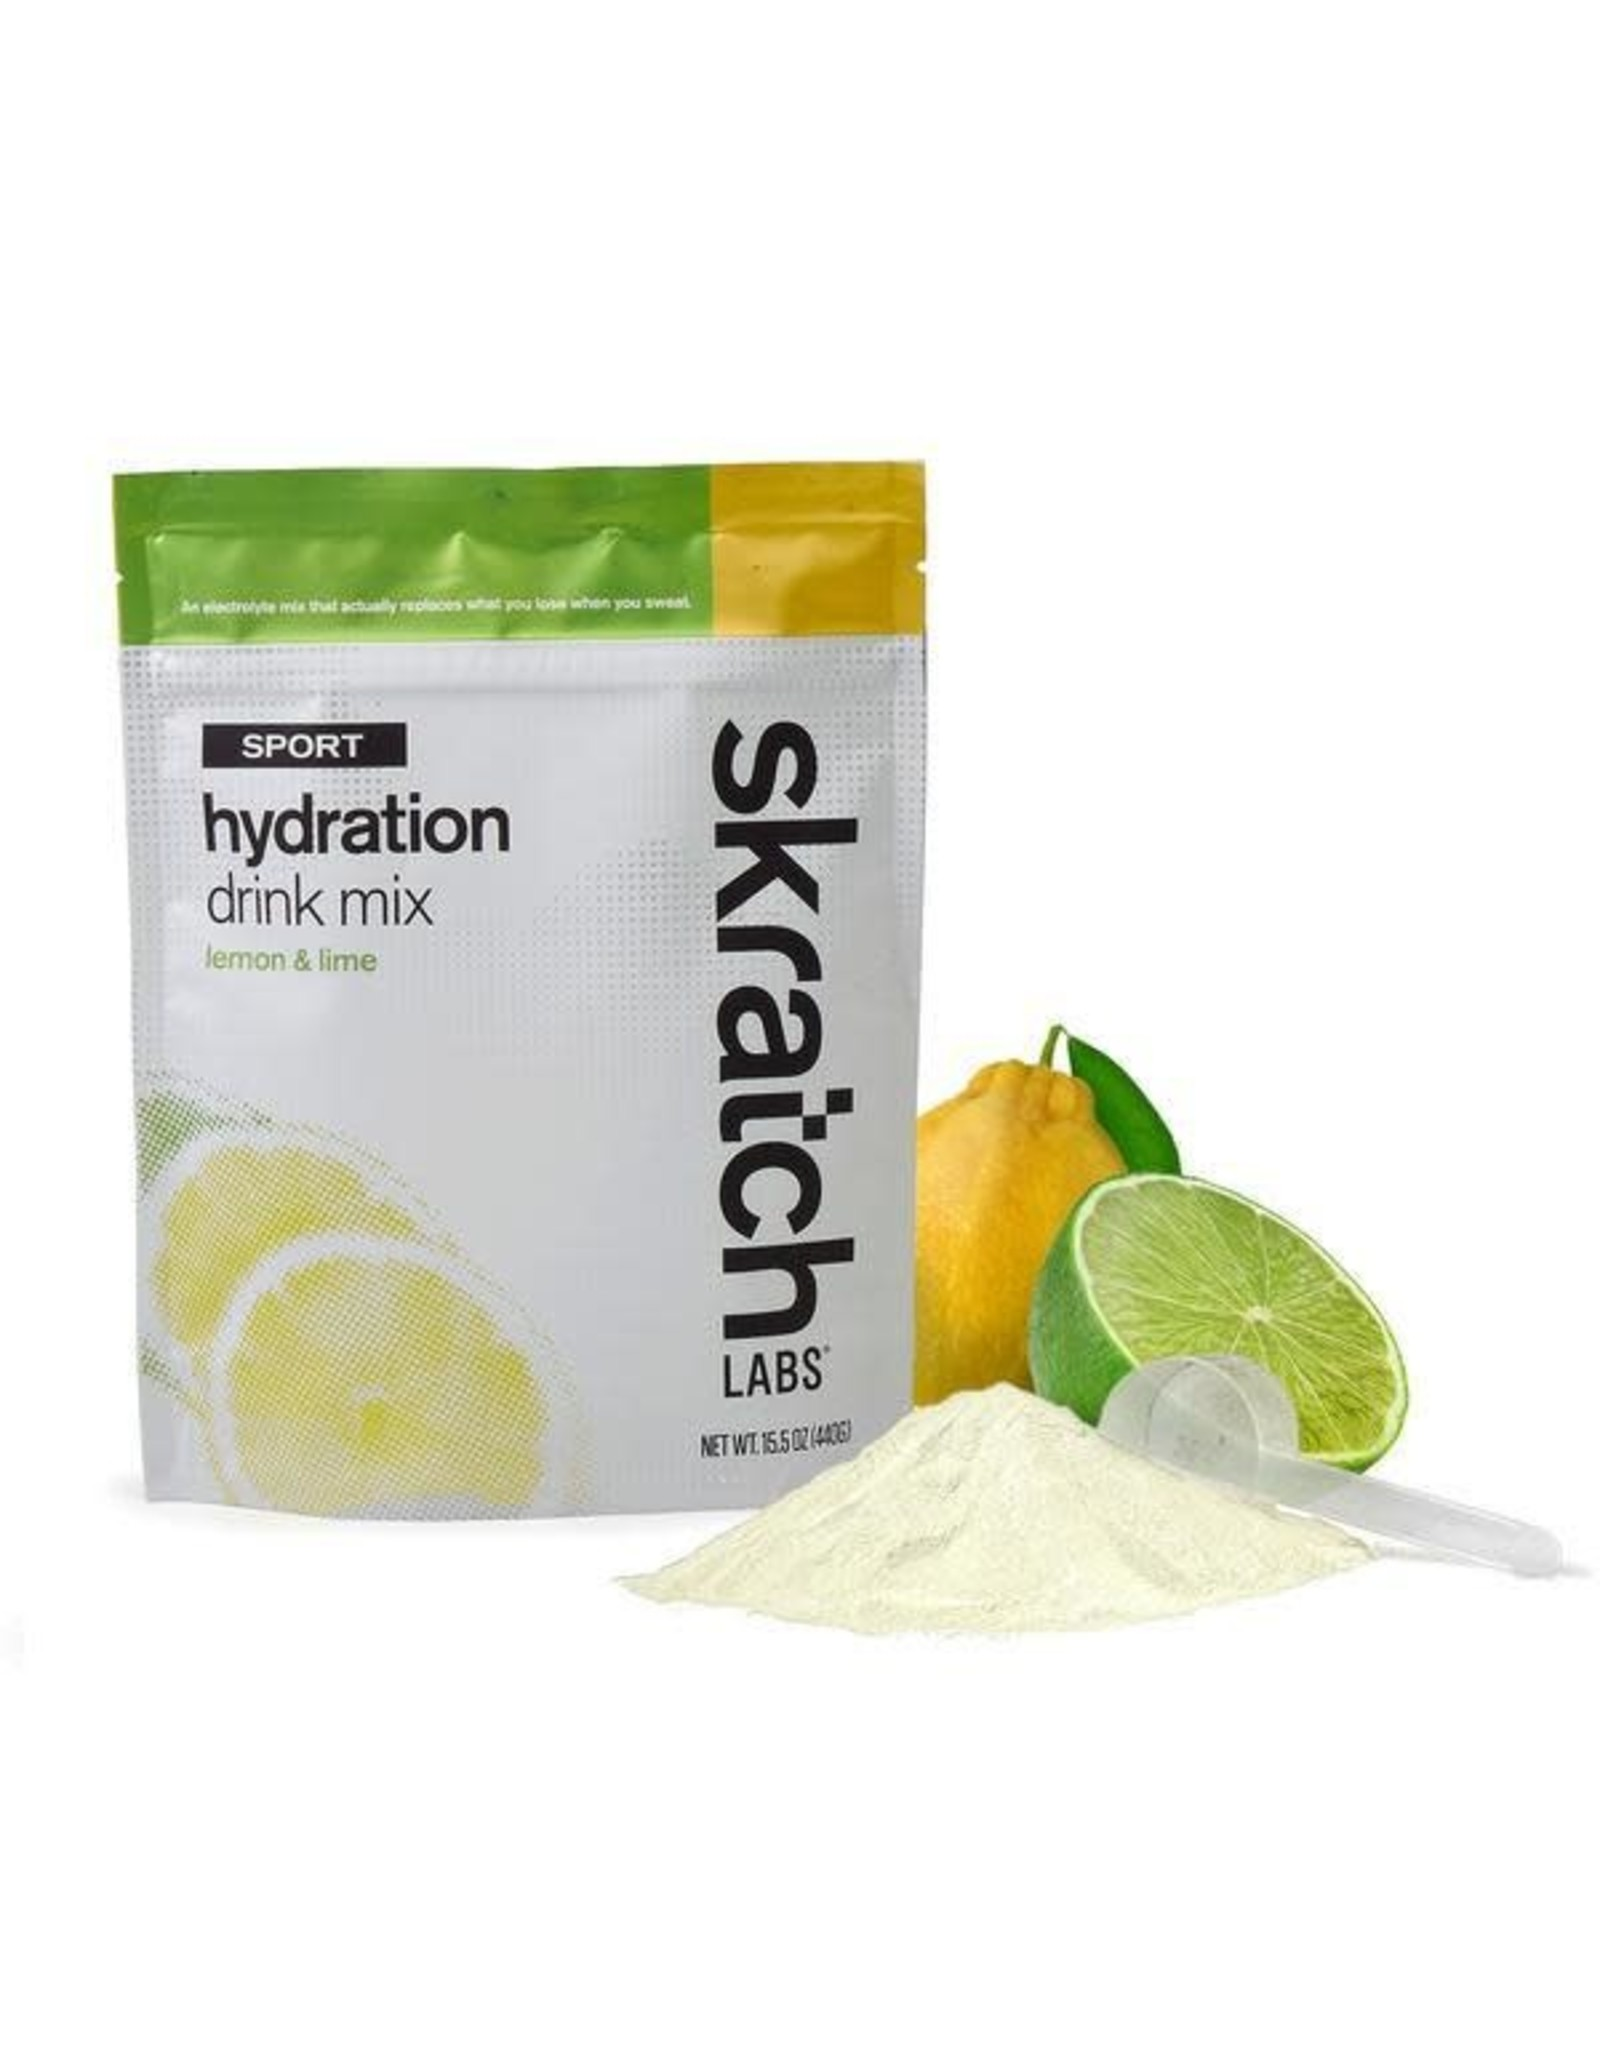 Skratch Skratch Labs Sport Hydration Drink Mix (20 Serving Pouch) - Lemons and Limes